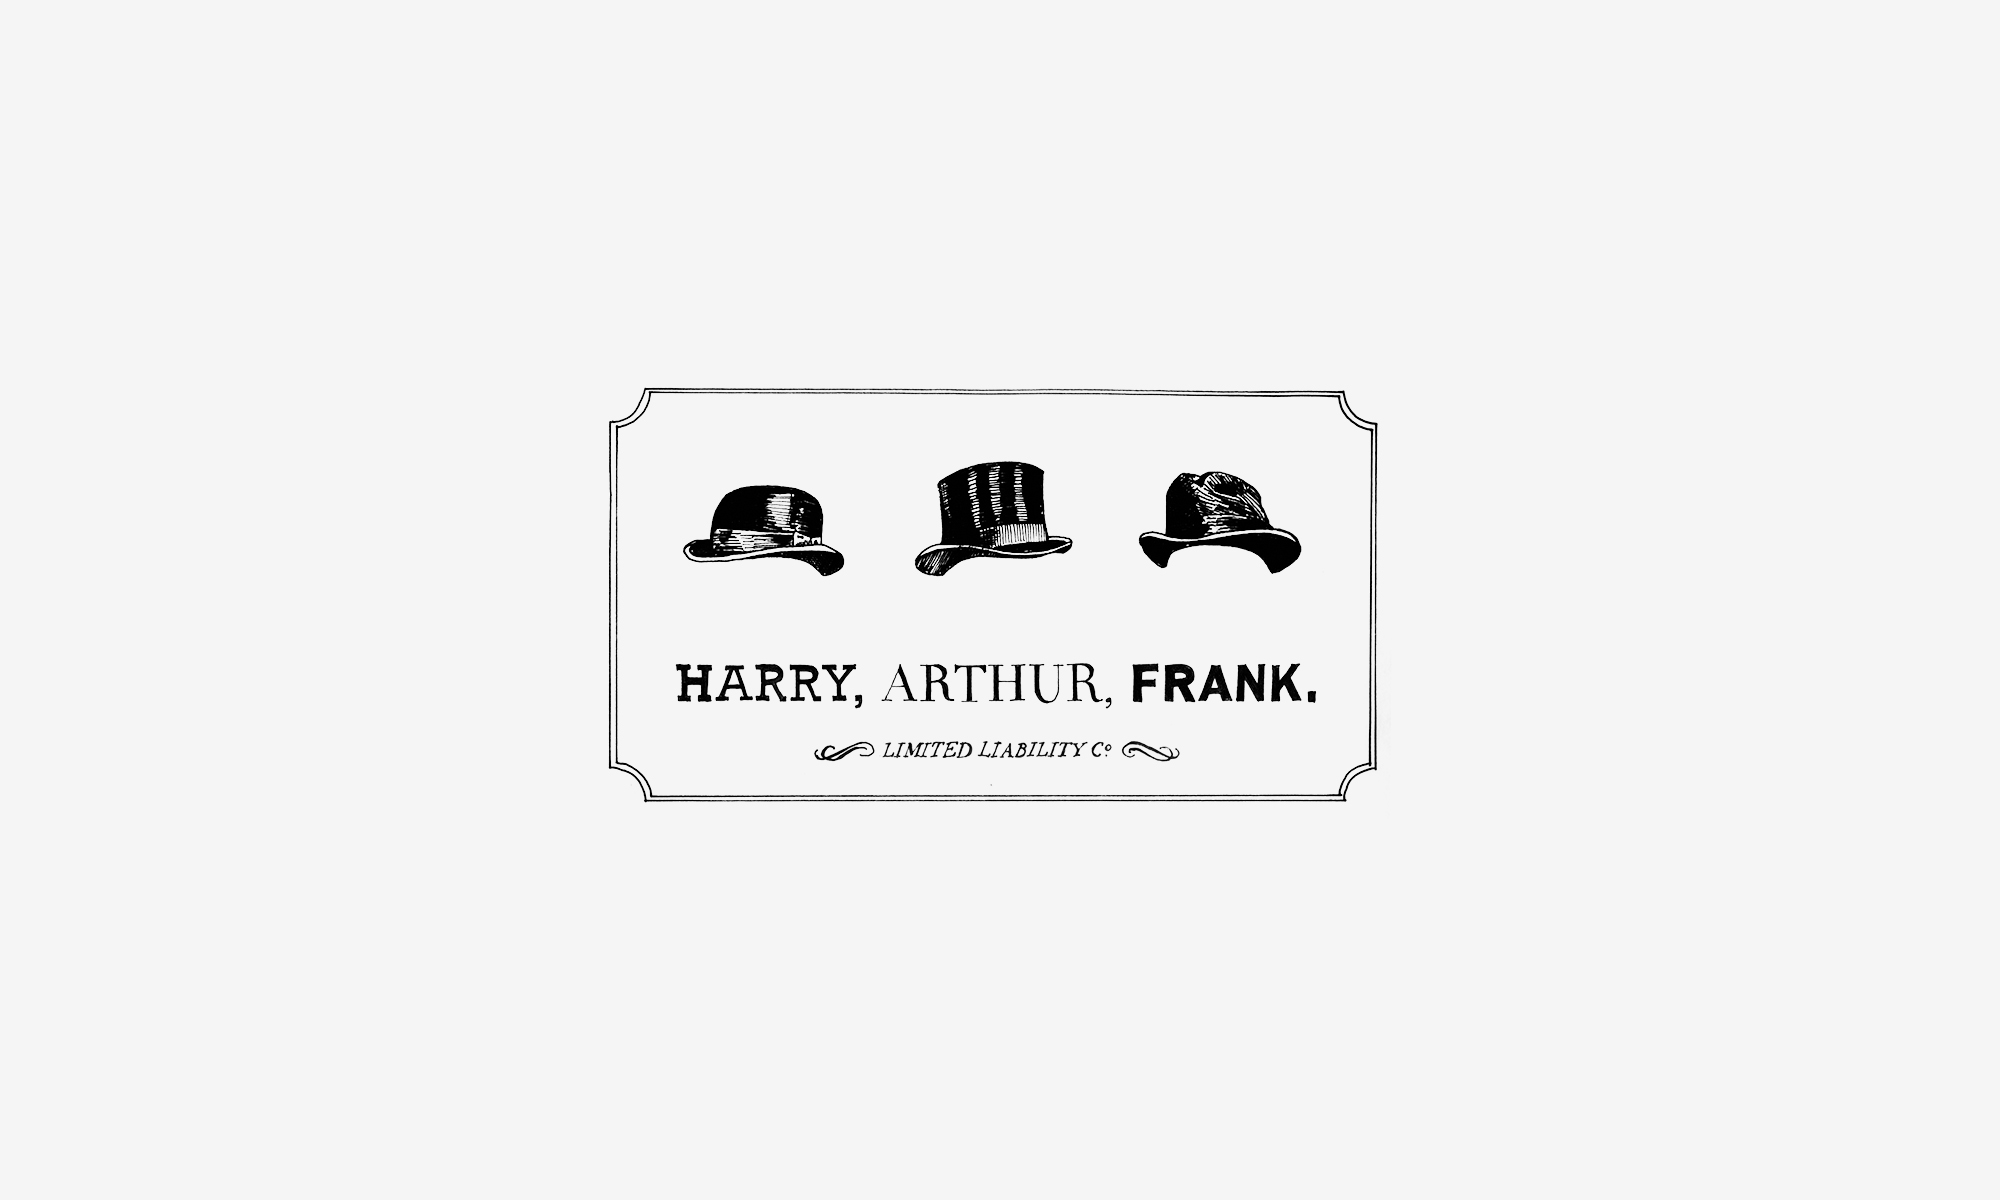 Harry, Arthur, Frank.